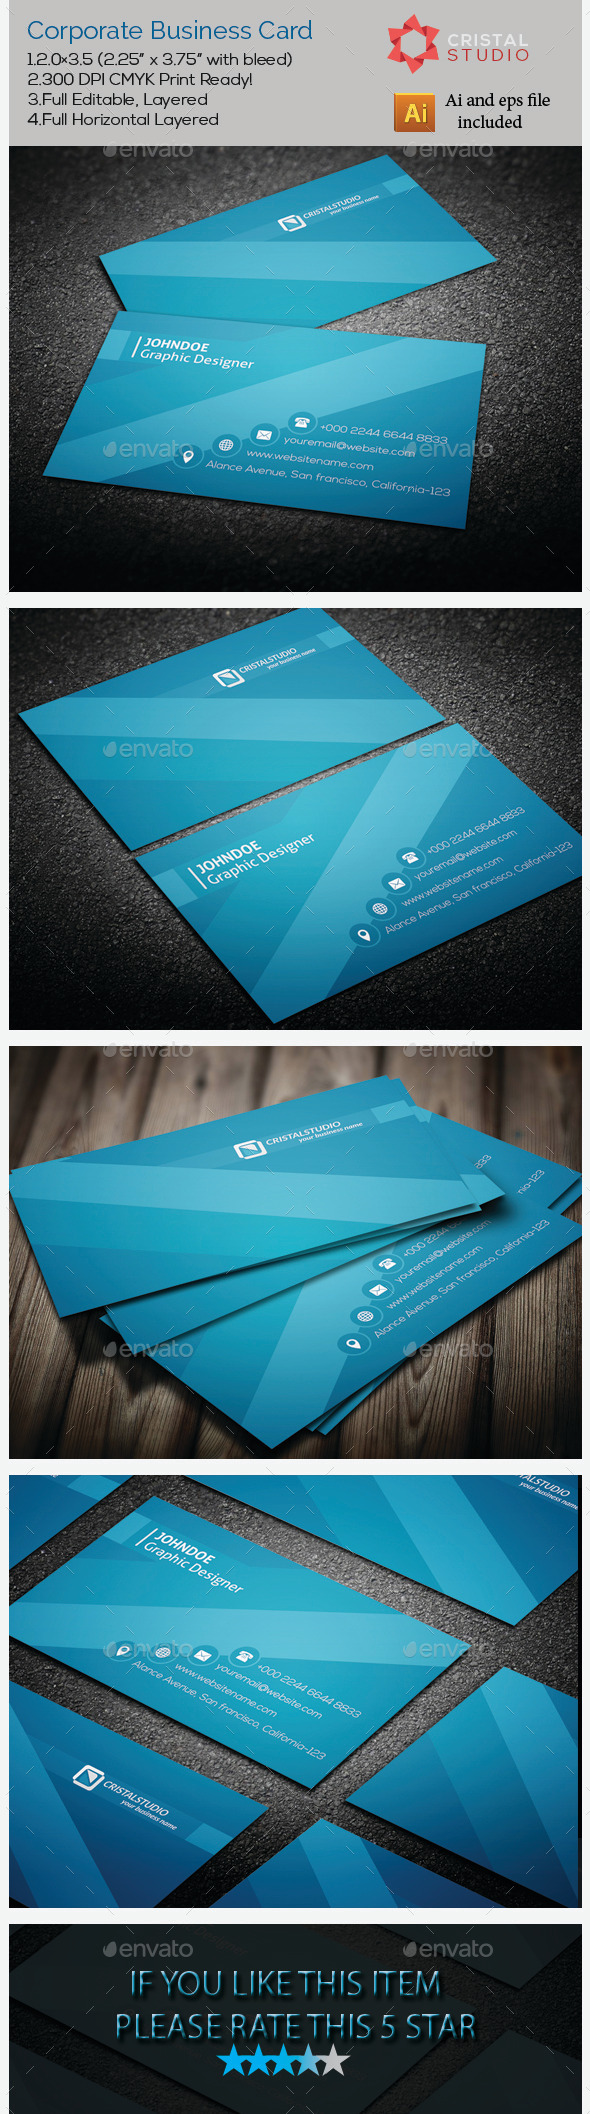 Corporate business card pinterest corporate business card corporate business card template ai buy and download httpgraphicriveritemcorporate business card9177754 reheart Choice Image